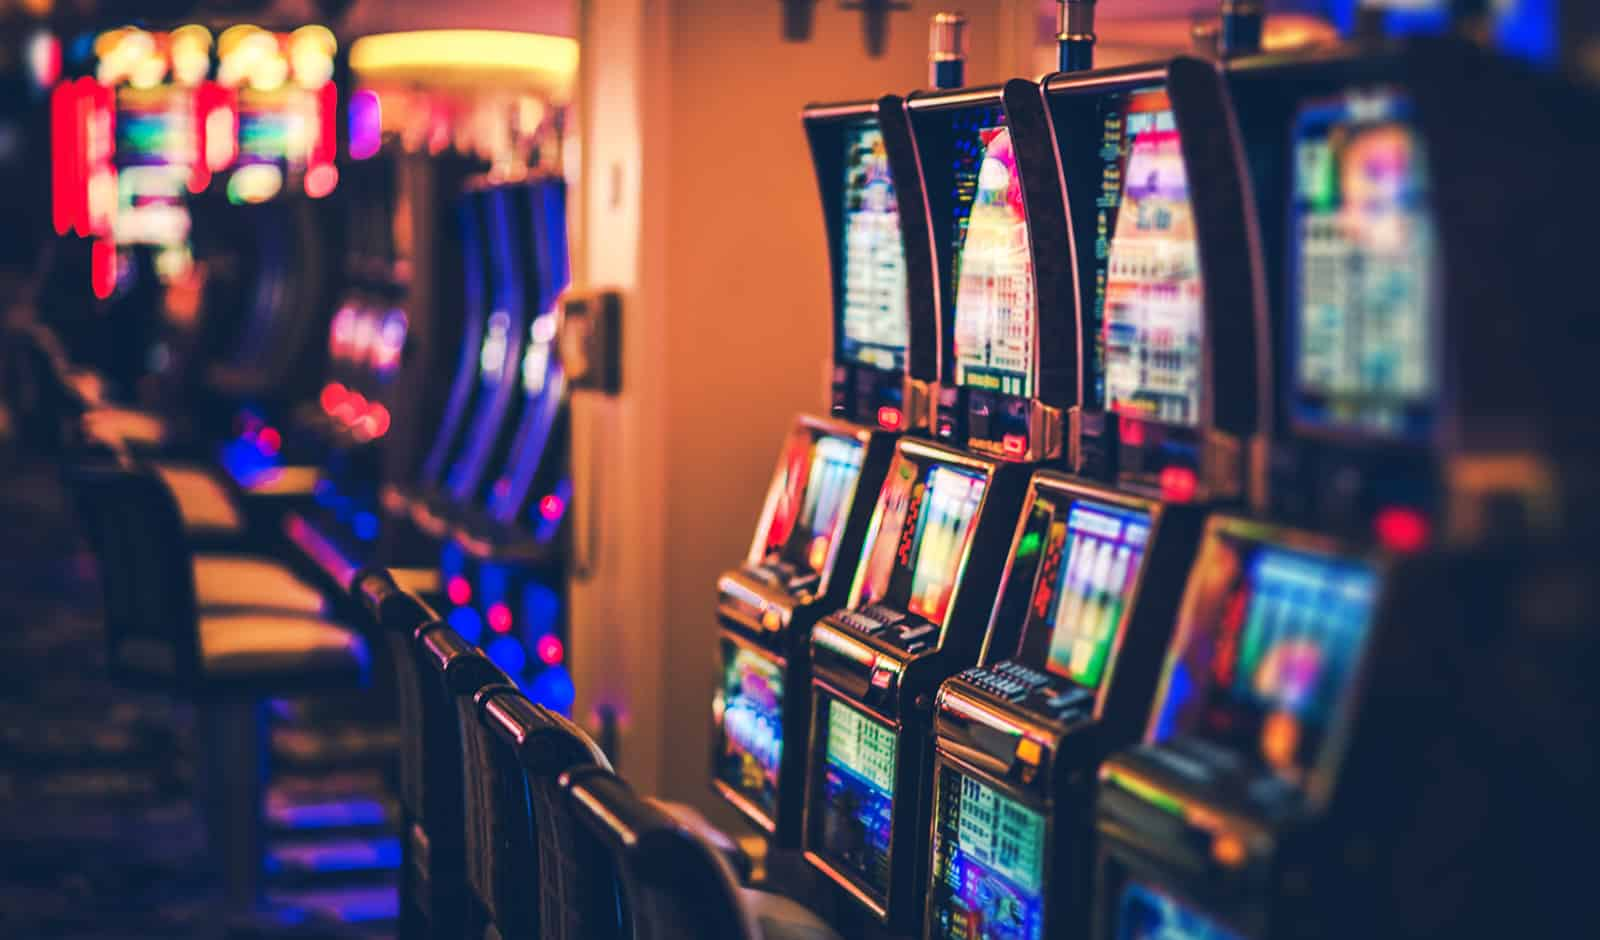 Take A Look And Check Out This Genius Casino Plan